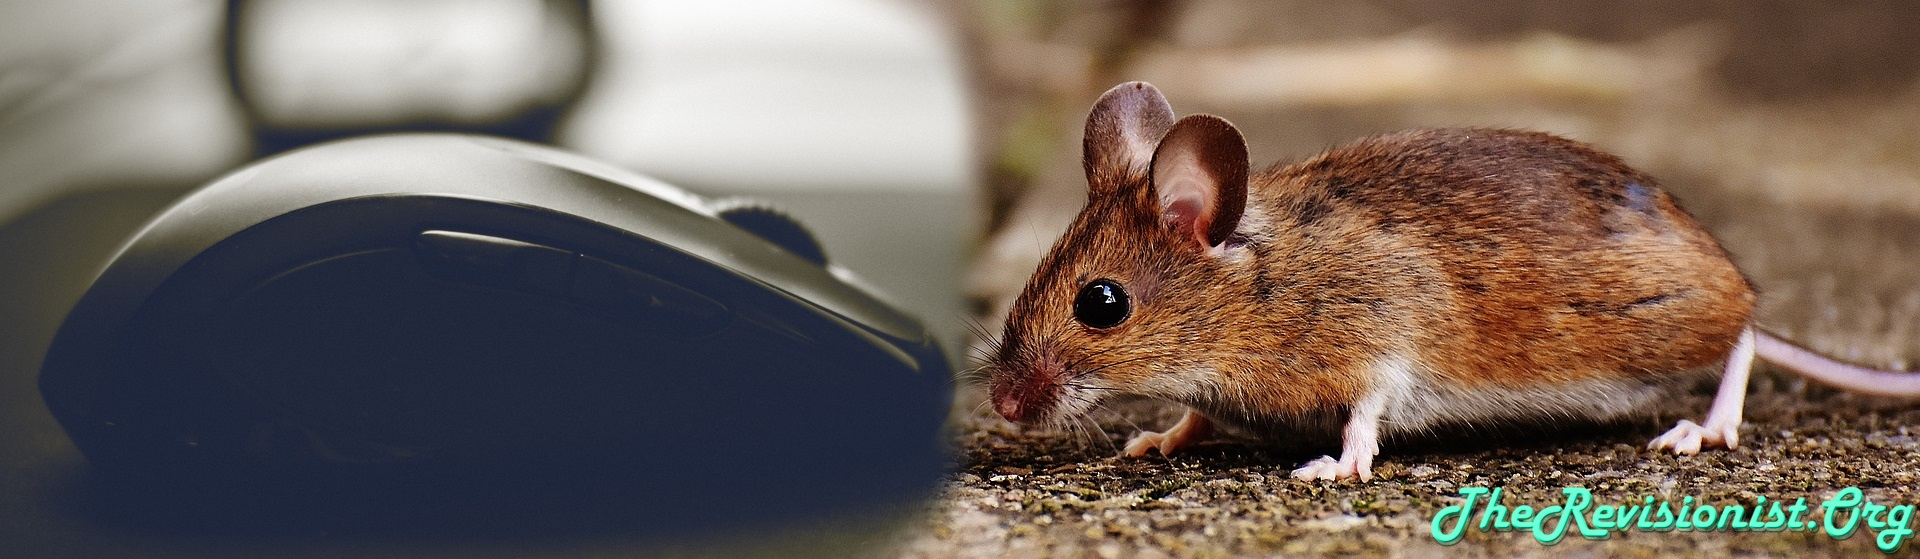 computer mouse vs real animal cute mouse